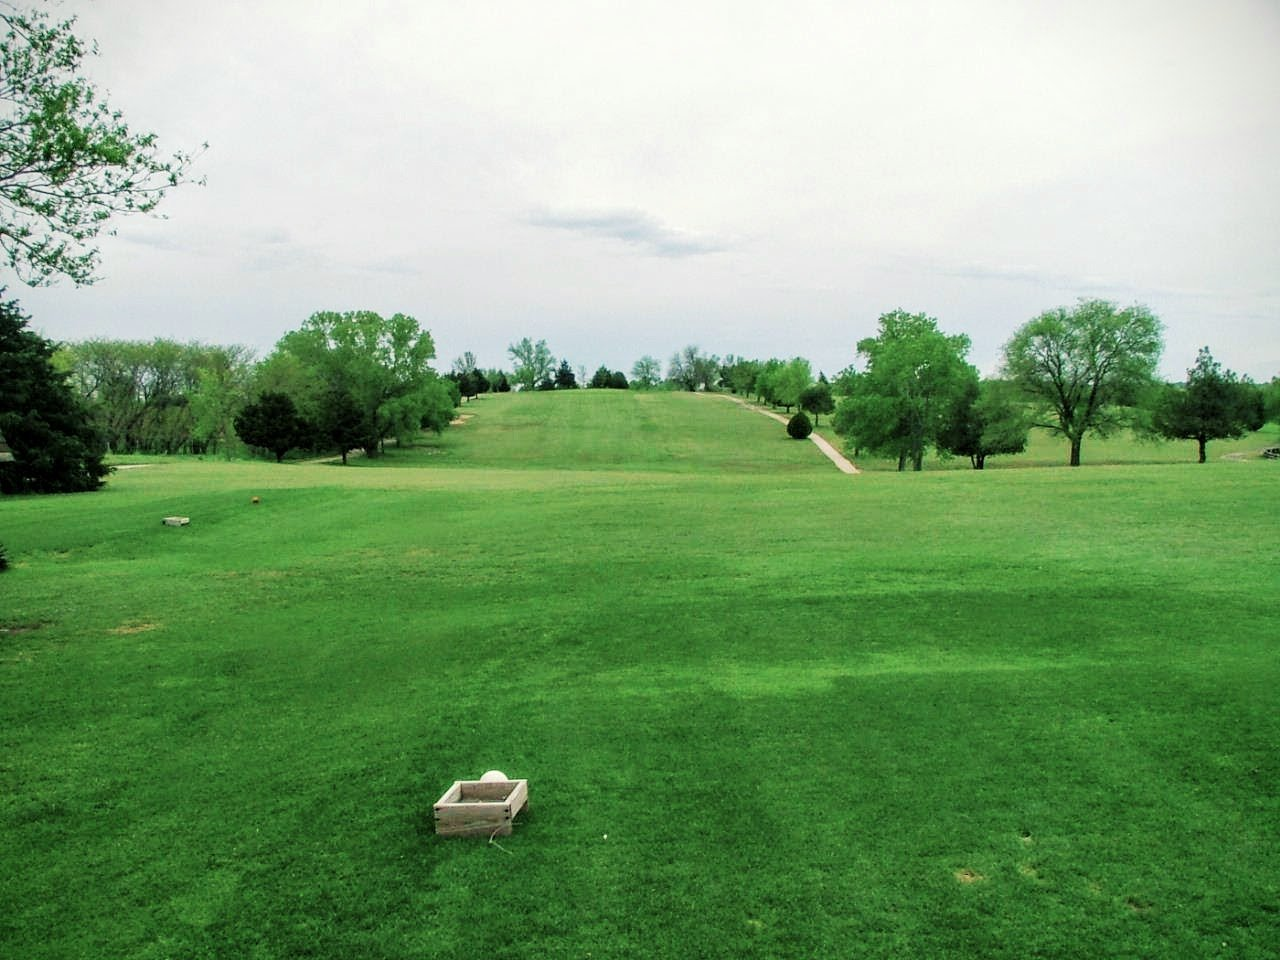 Golf Lindsborg - Hole 1 Tee-off